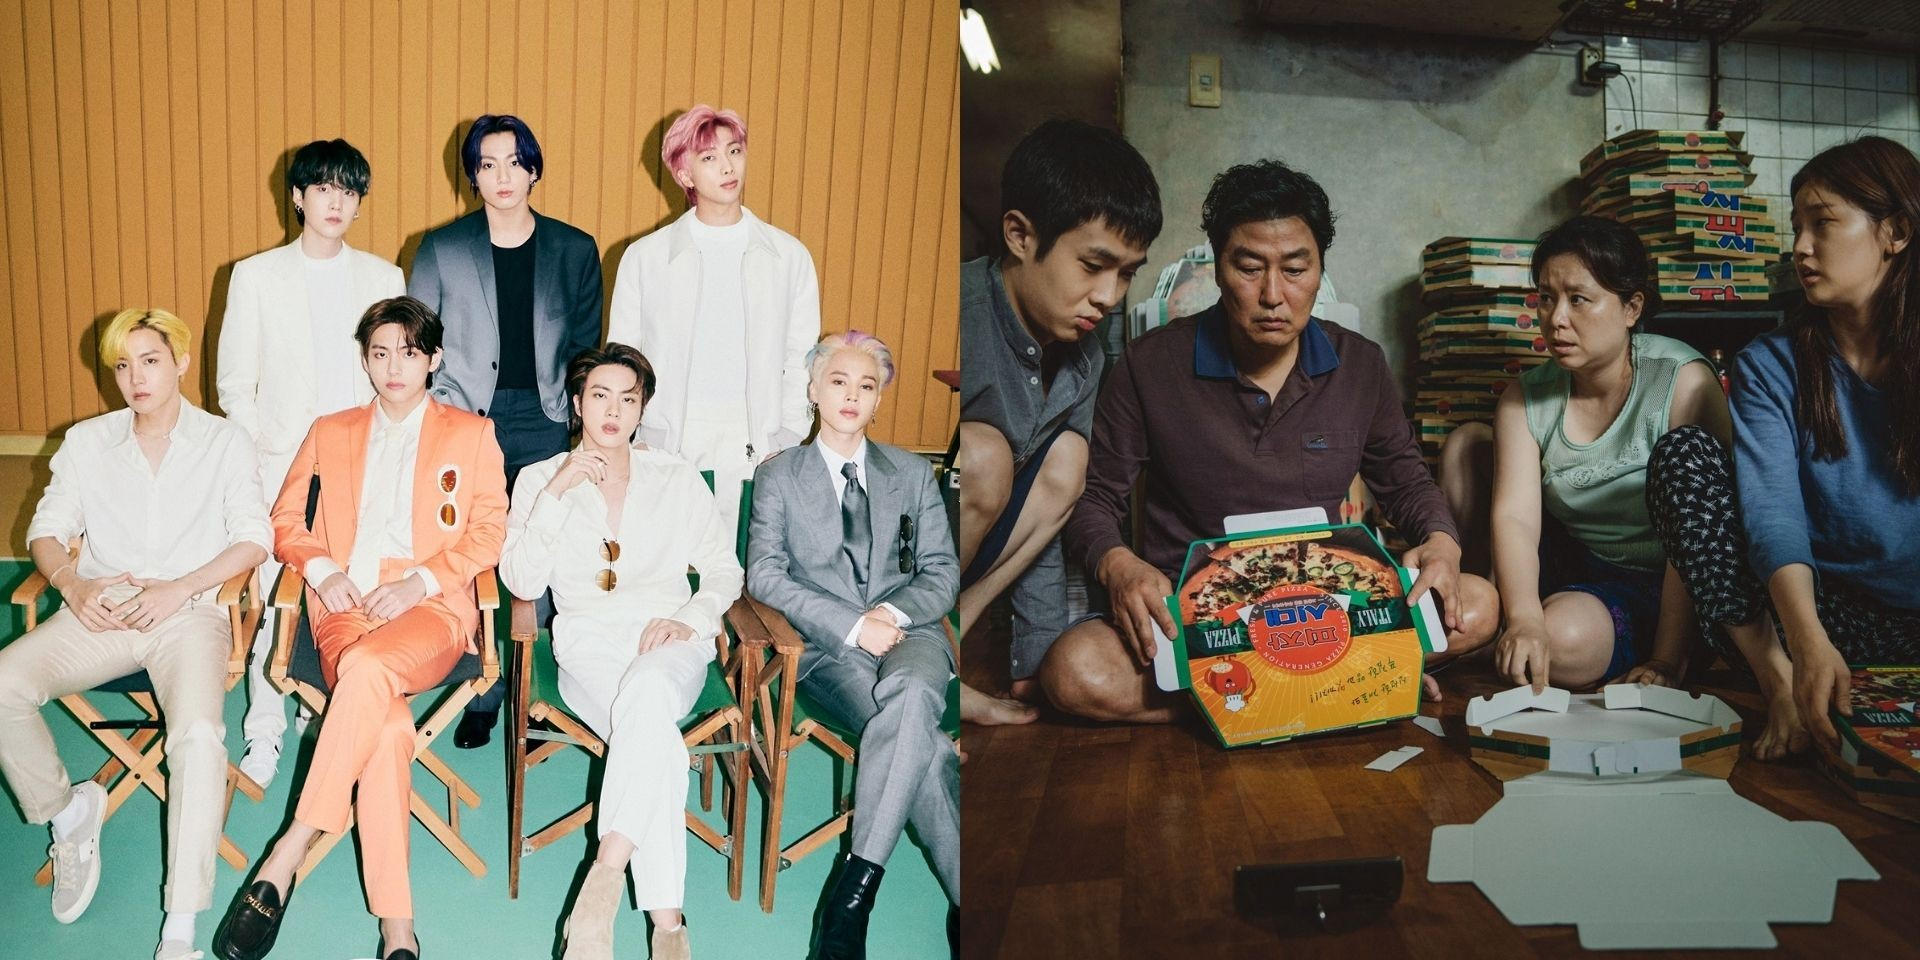 UNESCO to hold 'Korea: Cubically Imagined' exhibition in Paris featuring BTS, 'Parasite', and more